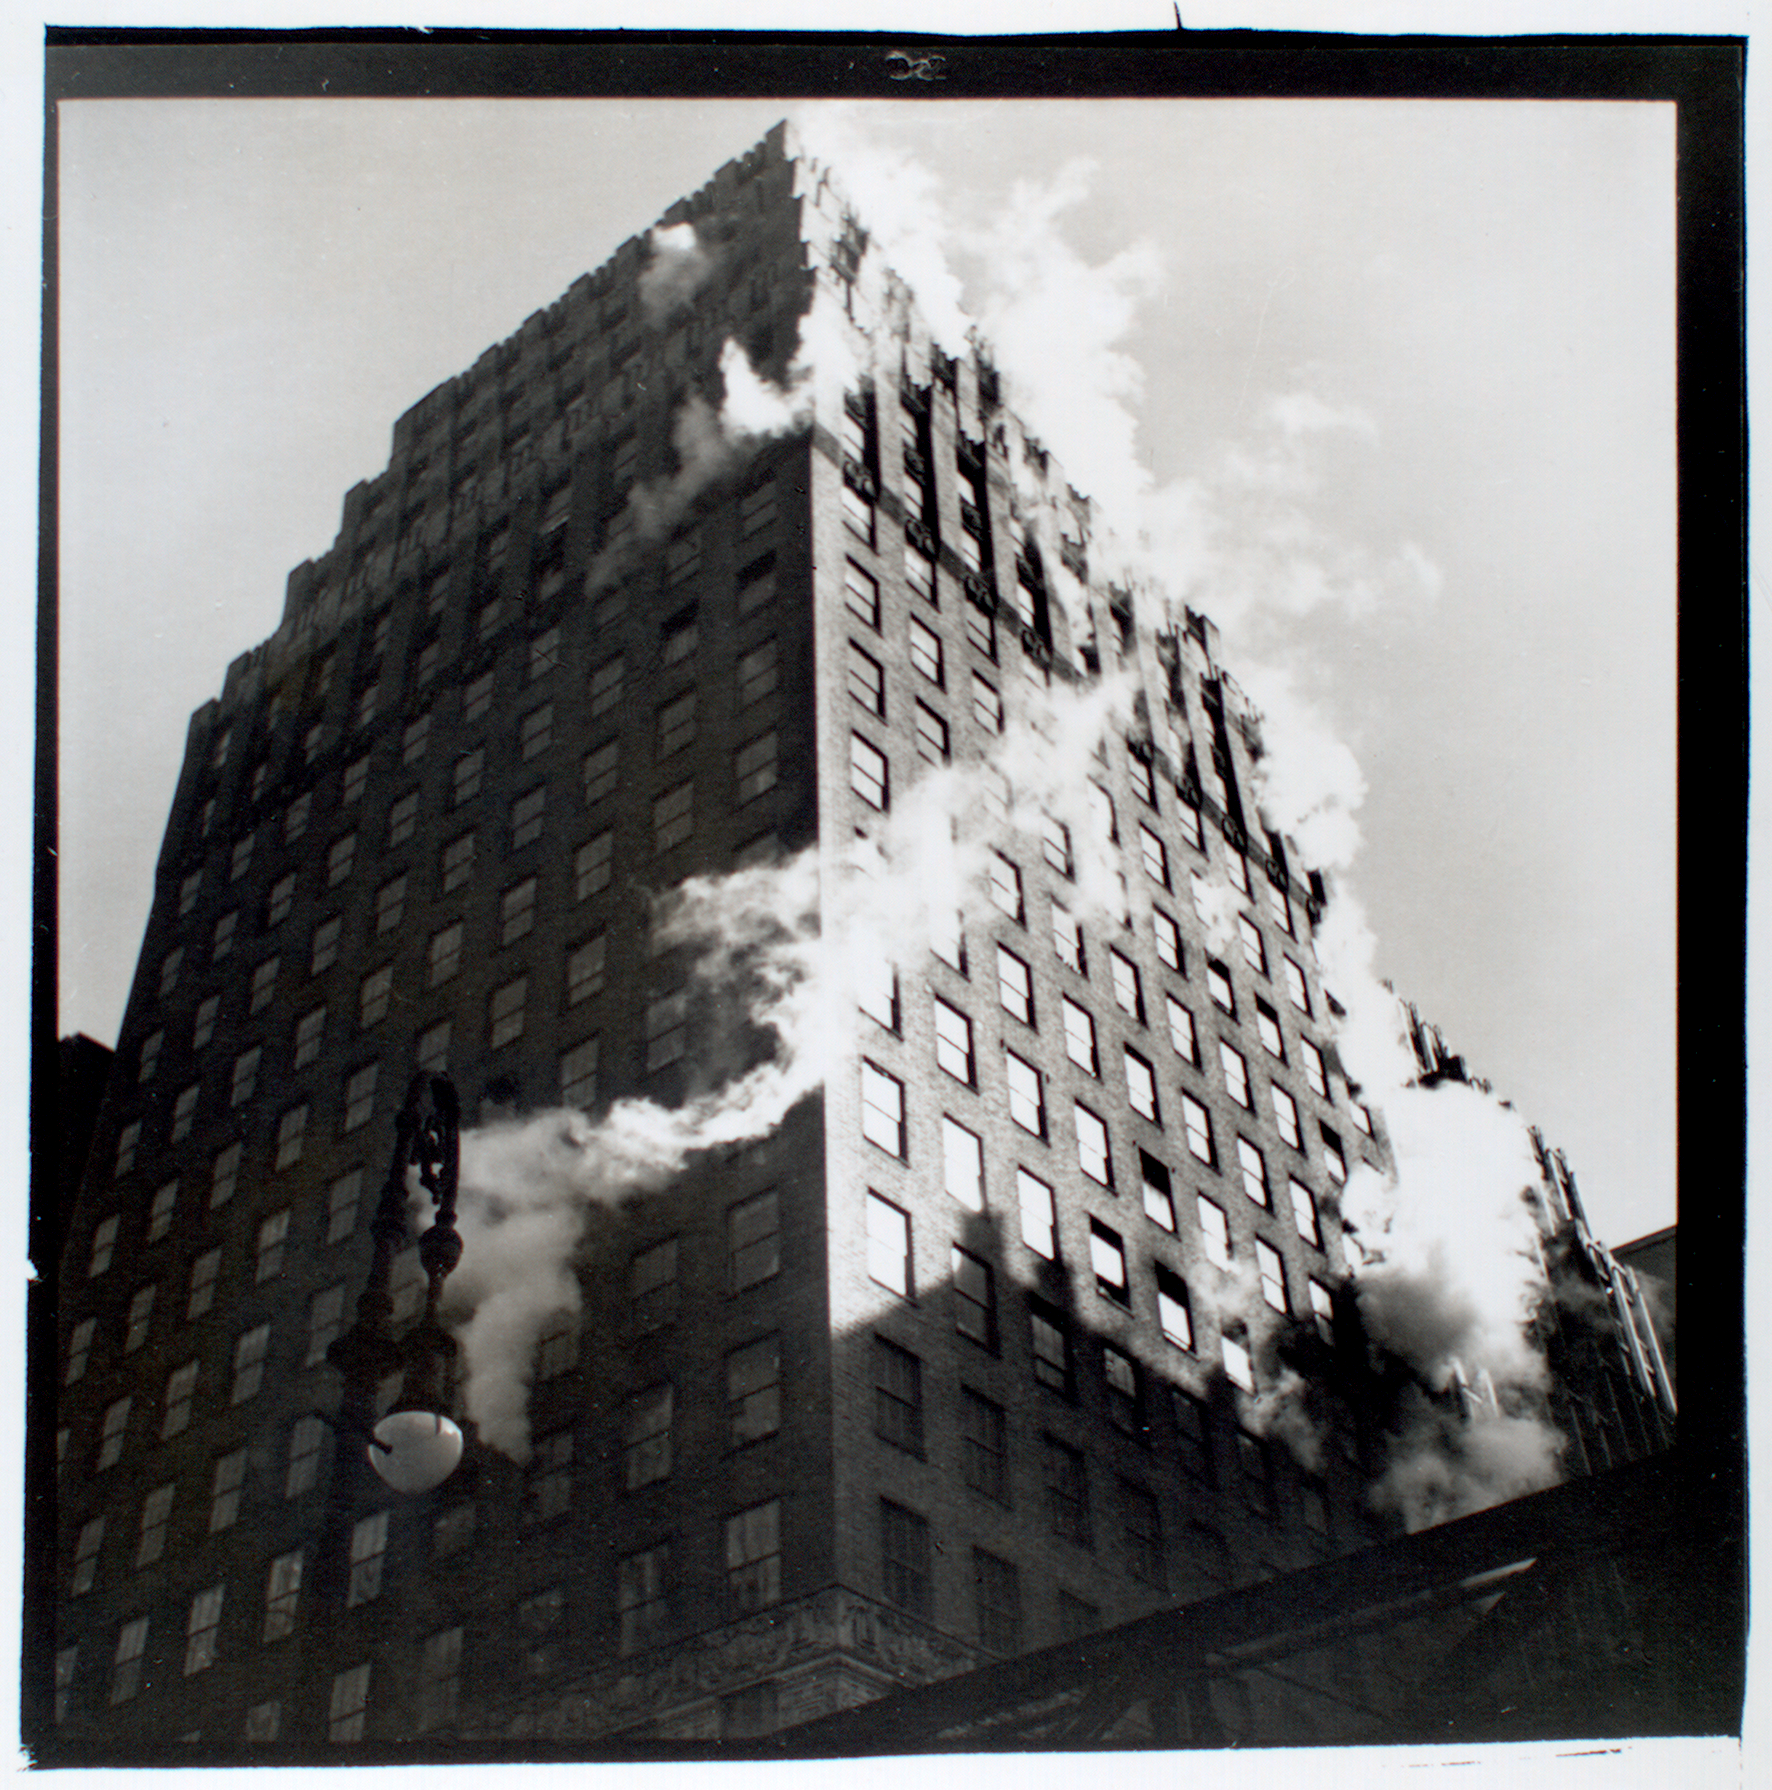 """""""Steam + Felt = Hats, 65 West 39th Street, Manhattan."""" (1938) From the  New York Public Library Digital Collections ."""